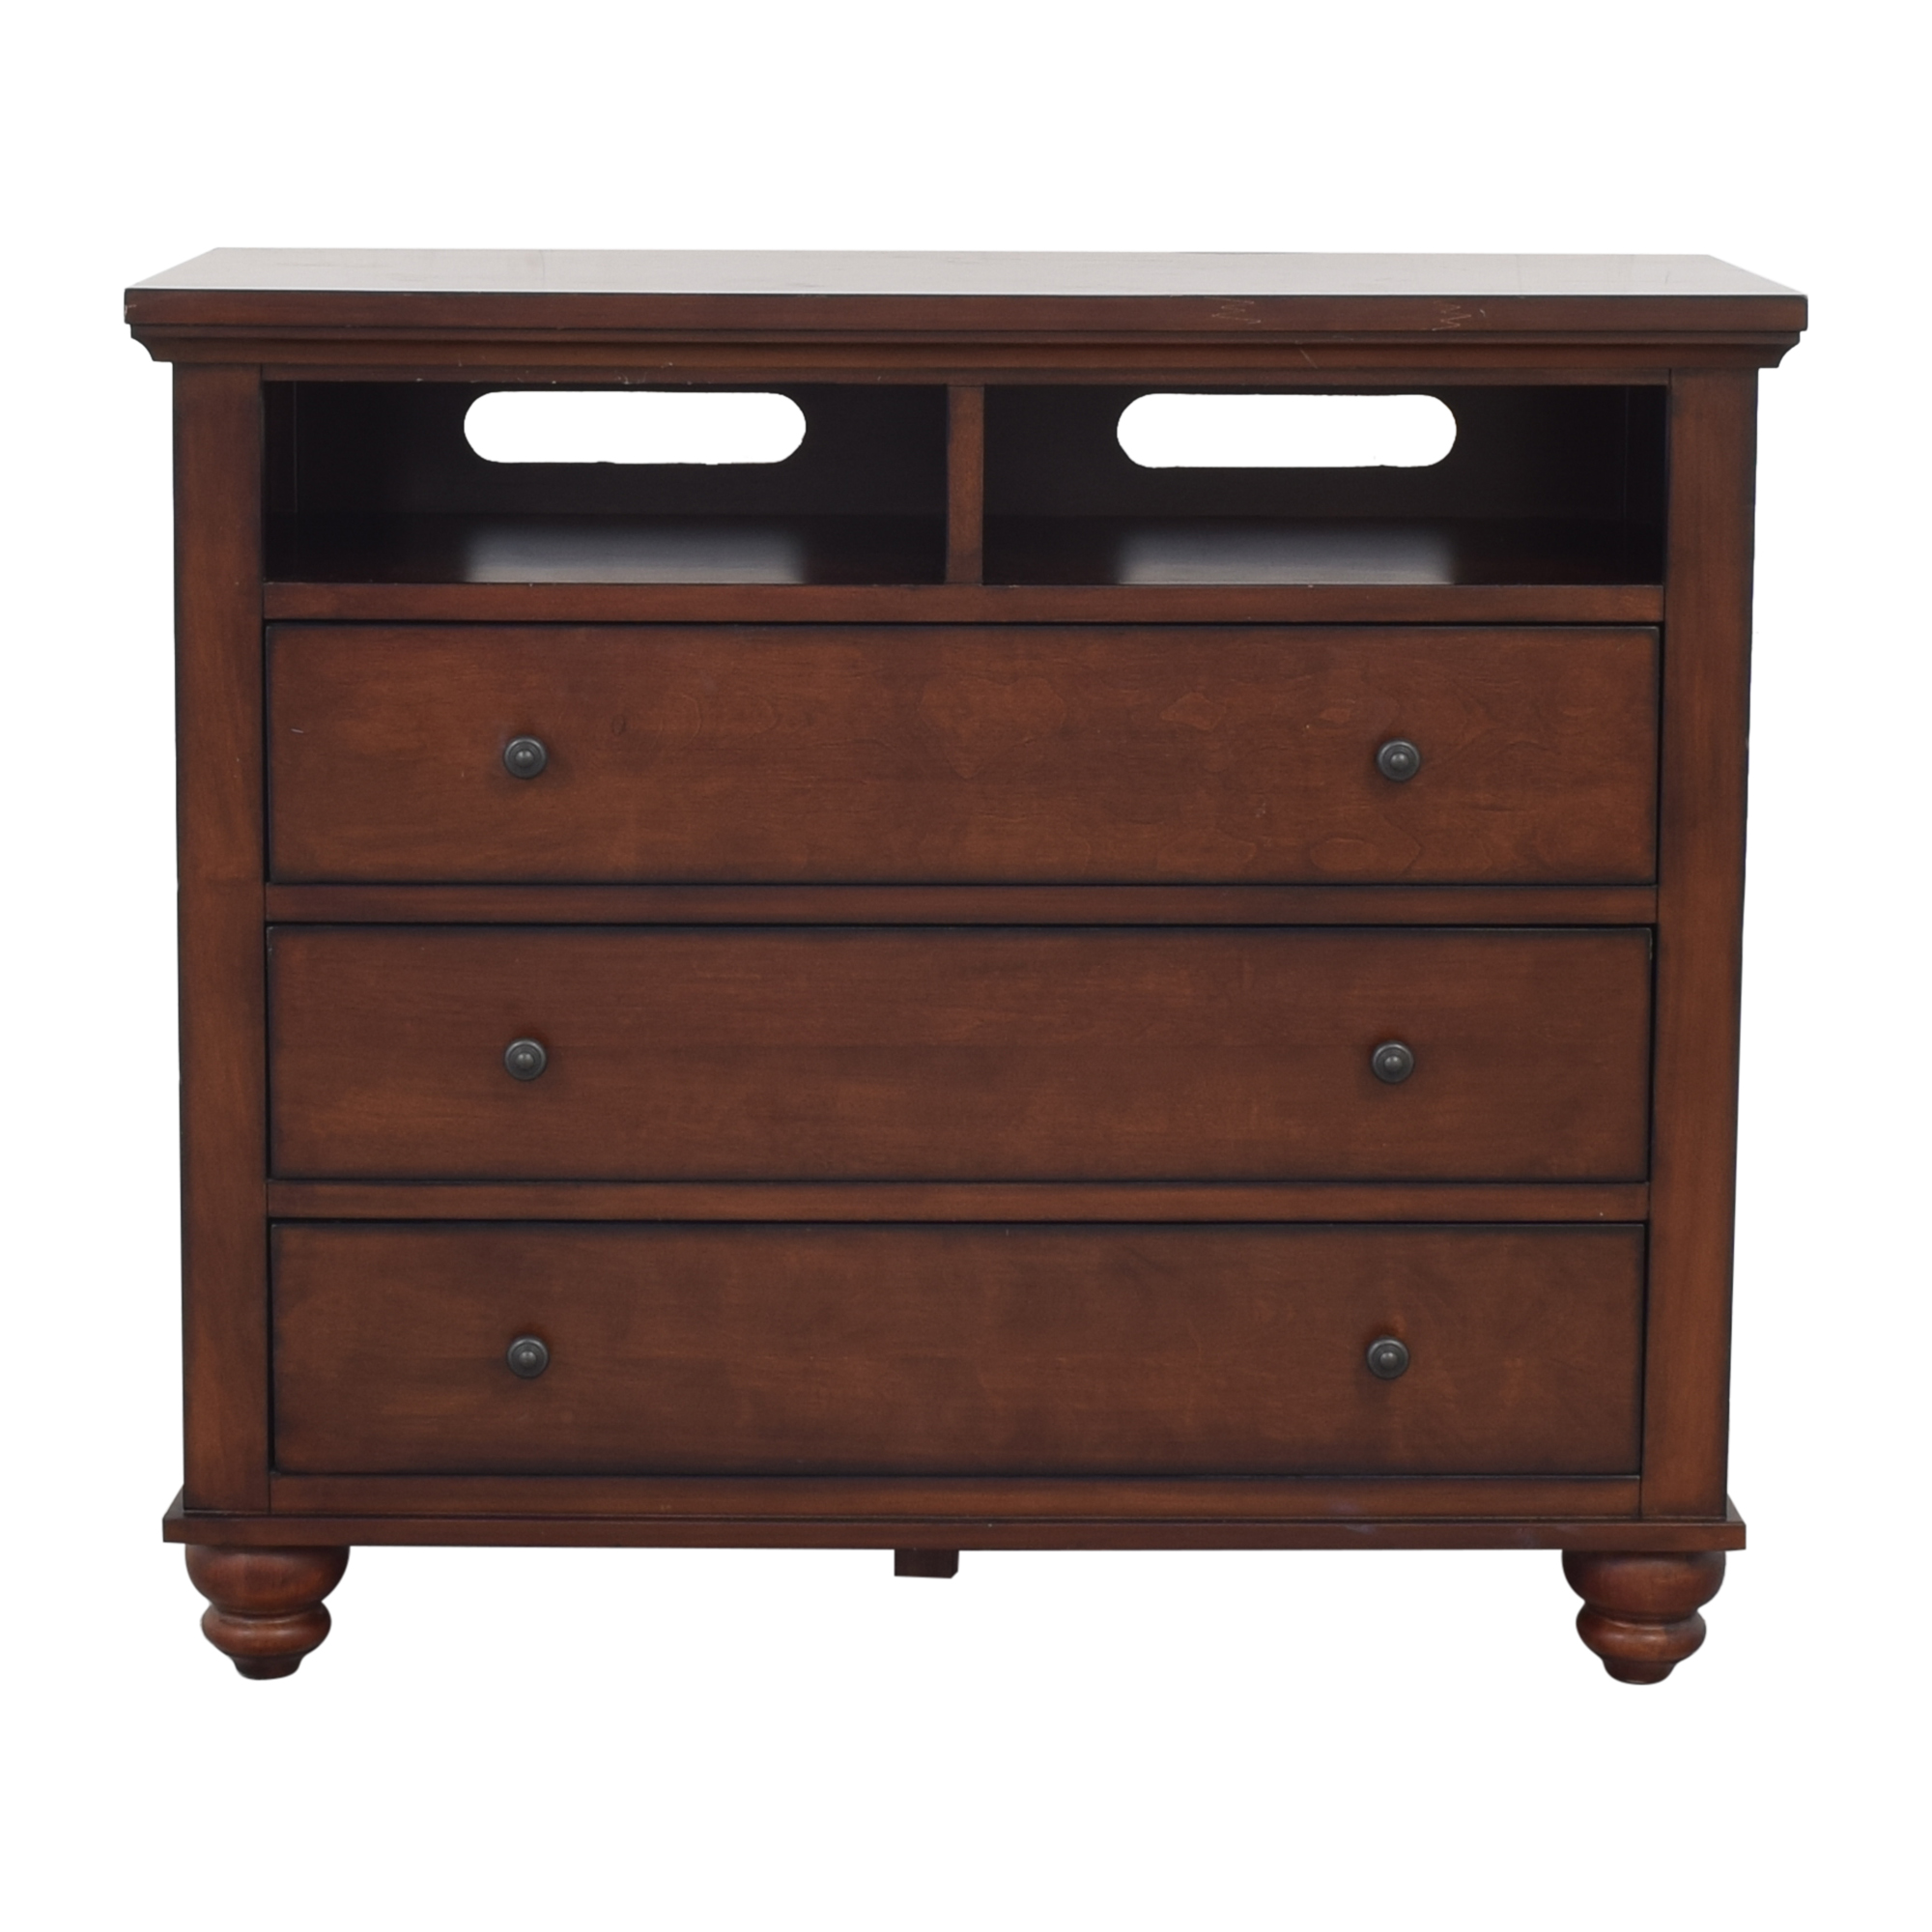 buy aspenhome aspenhome Entertainment Chest online